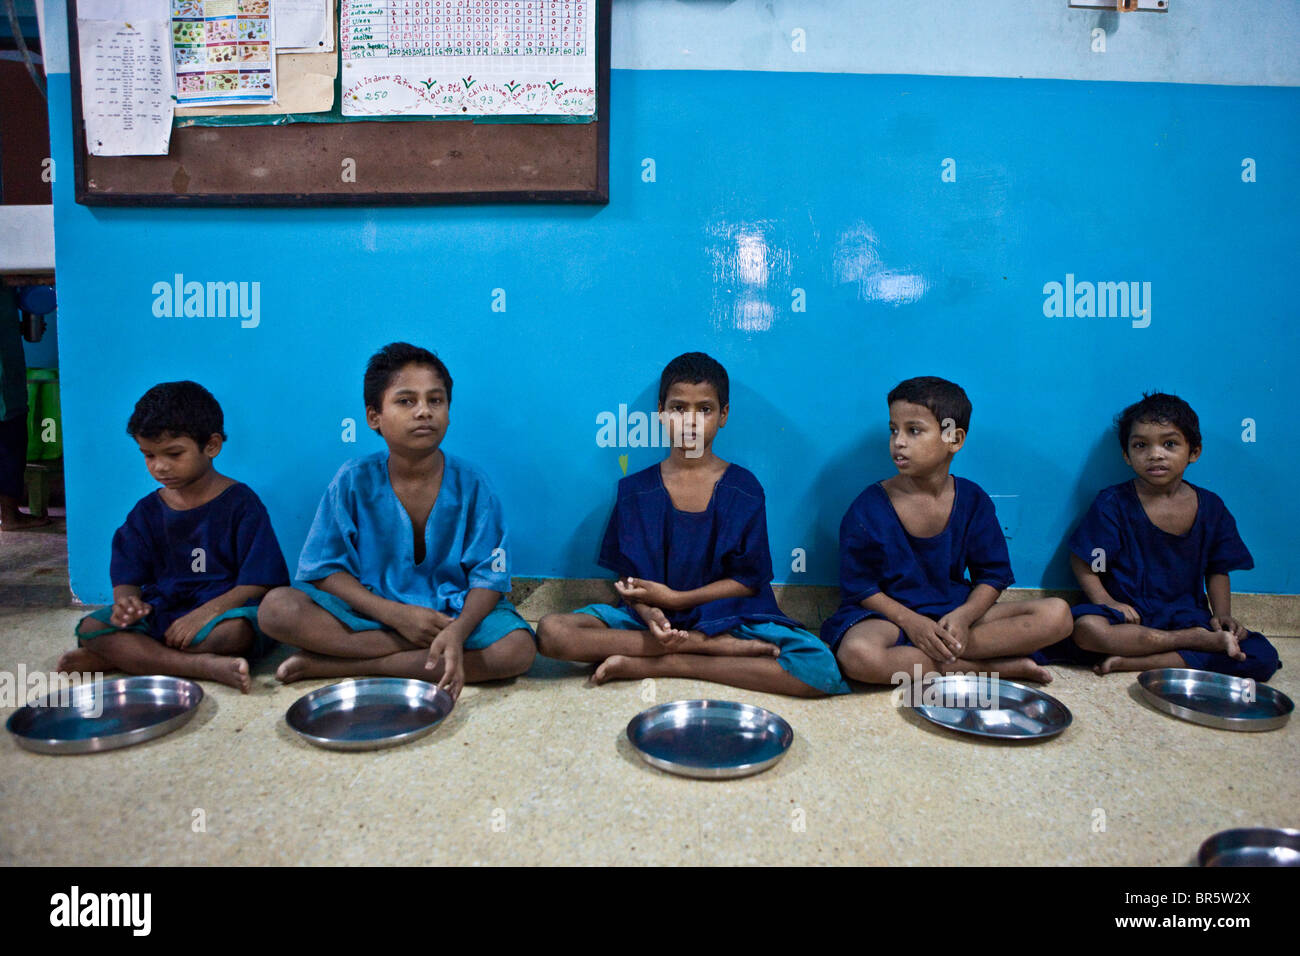 Five boys wait for their food at the CINI halfway house for vulnerable street children in Calcutta, India - Stock Image